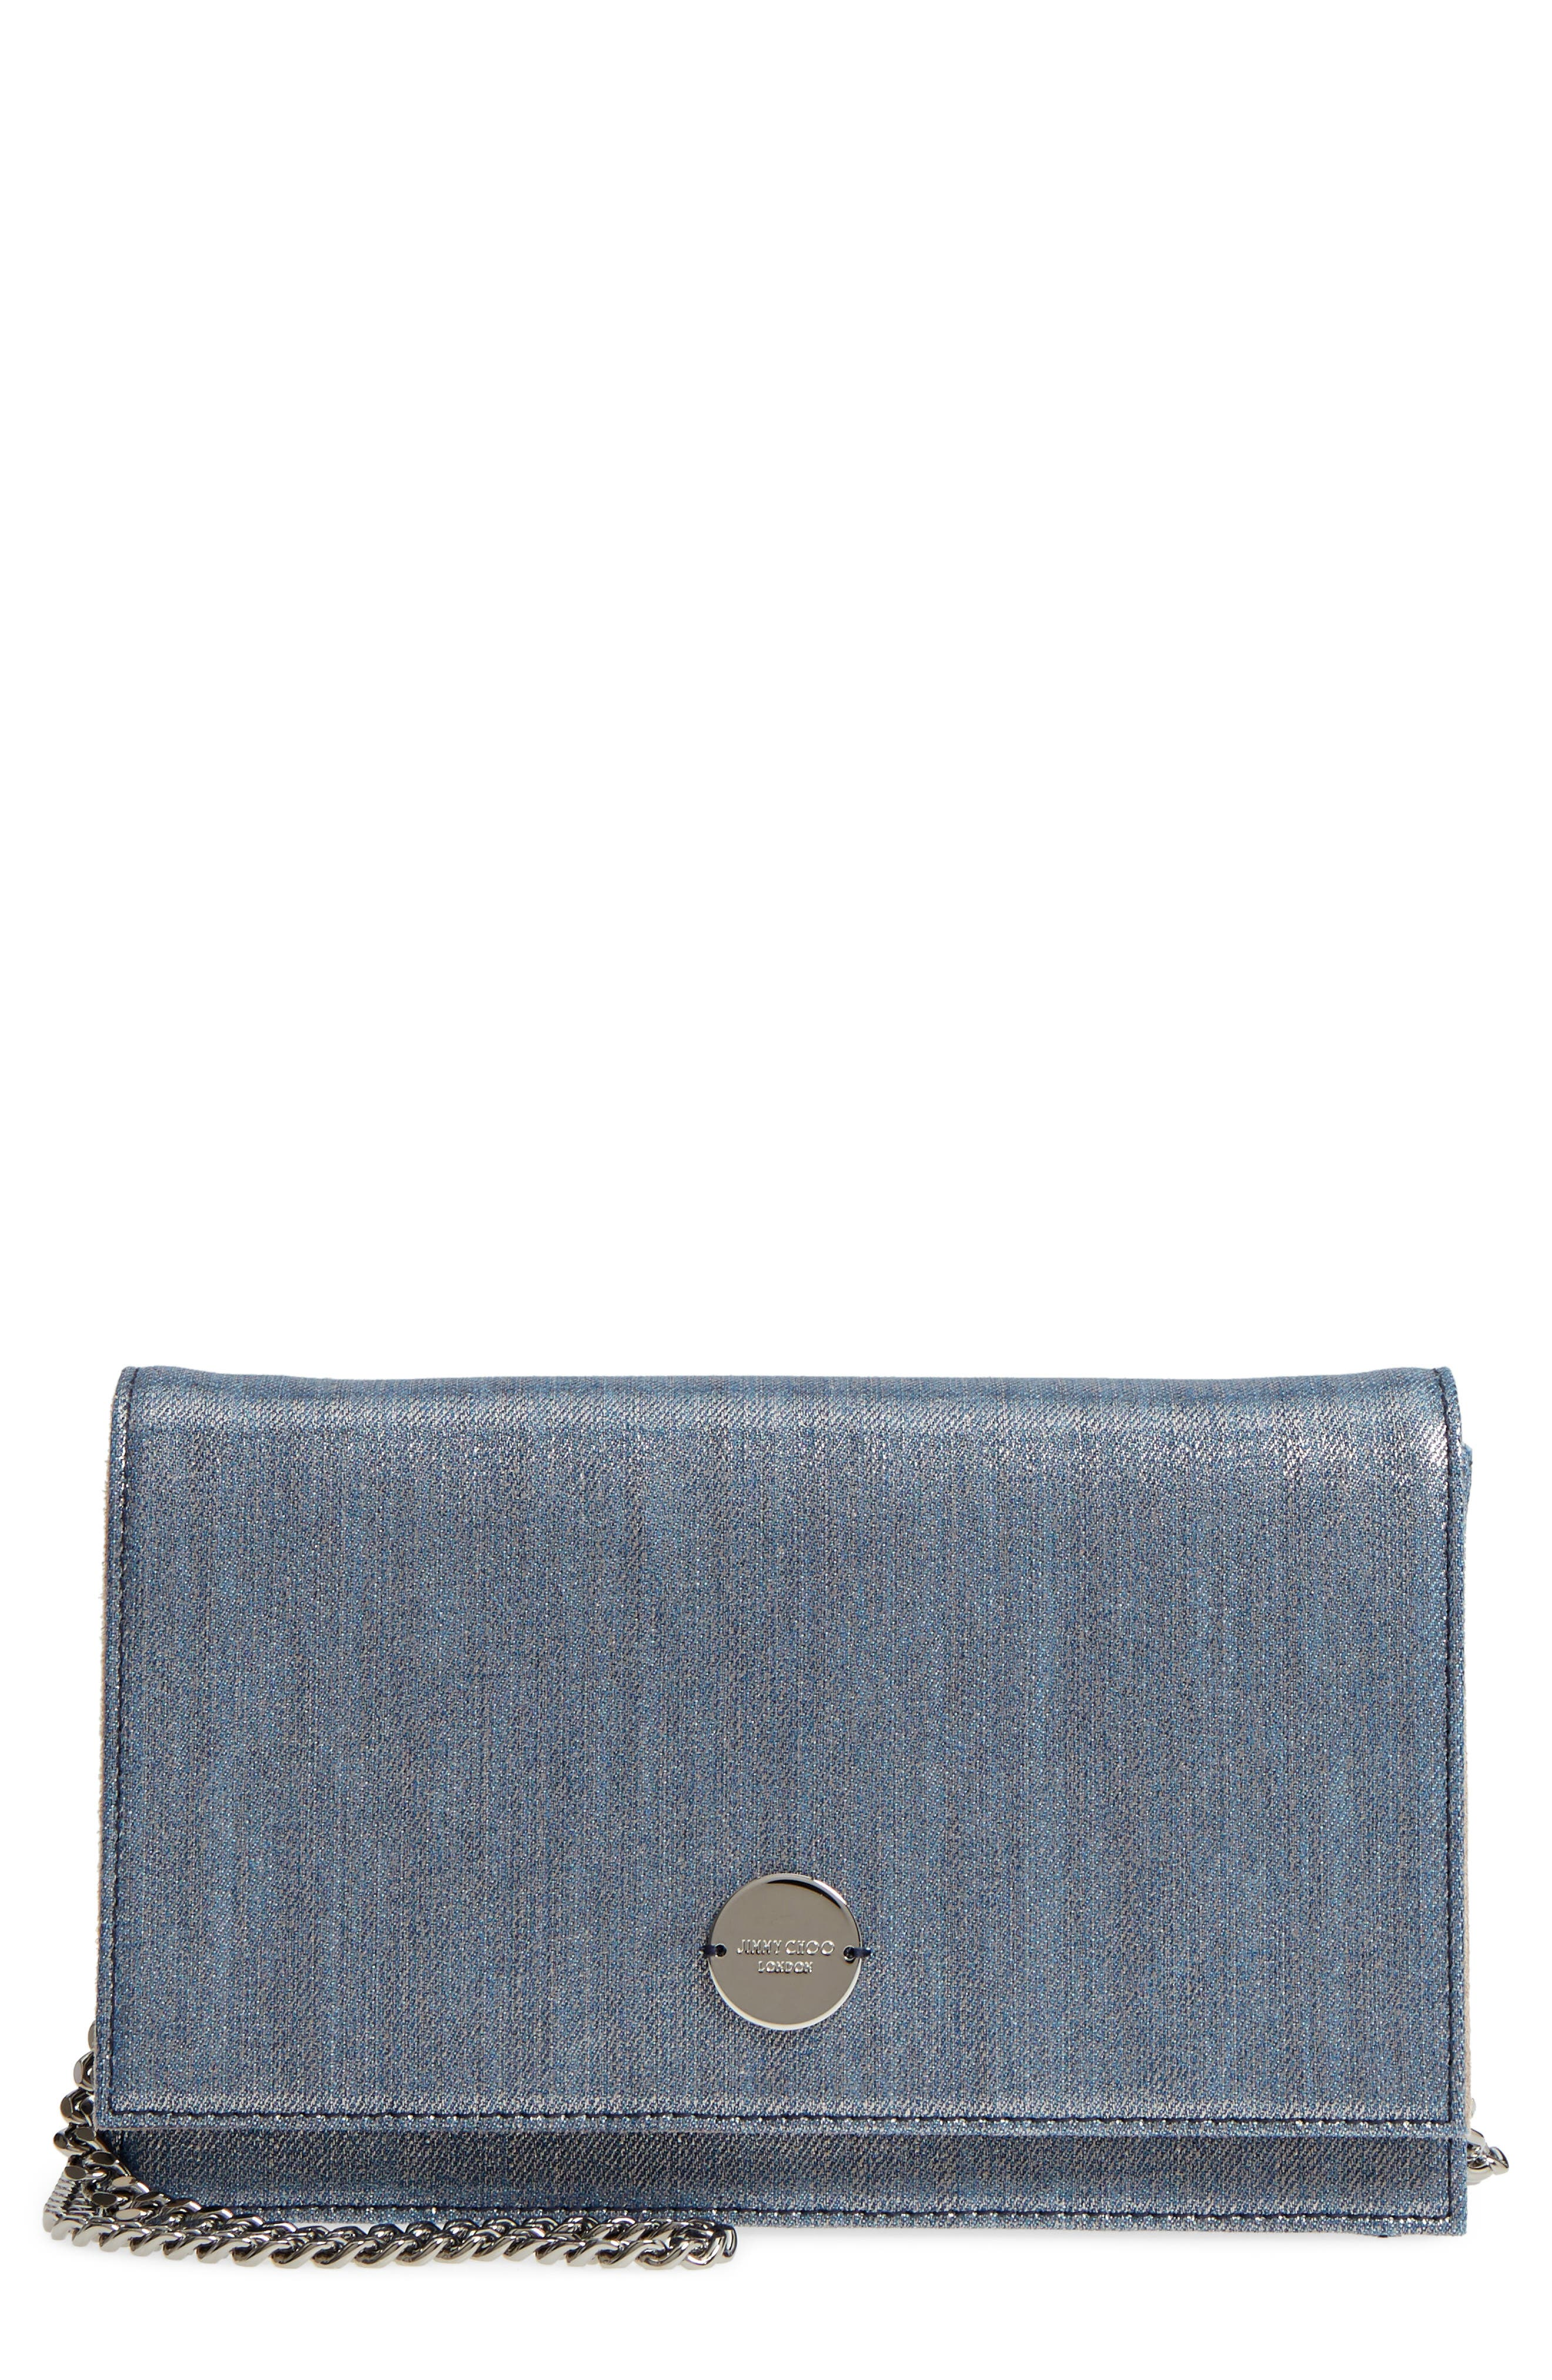 Florence Metallic Denim Glitter Clutch,                             Main thumbnail 1, color,                             Dusk Blue